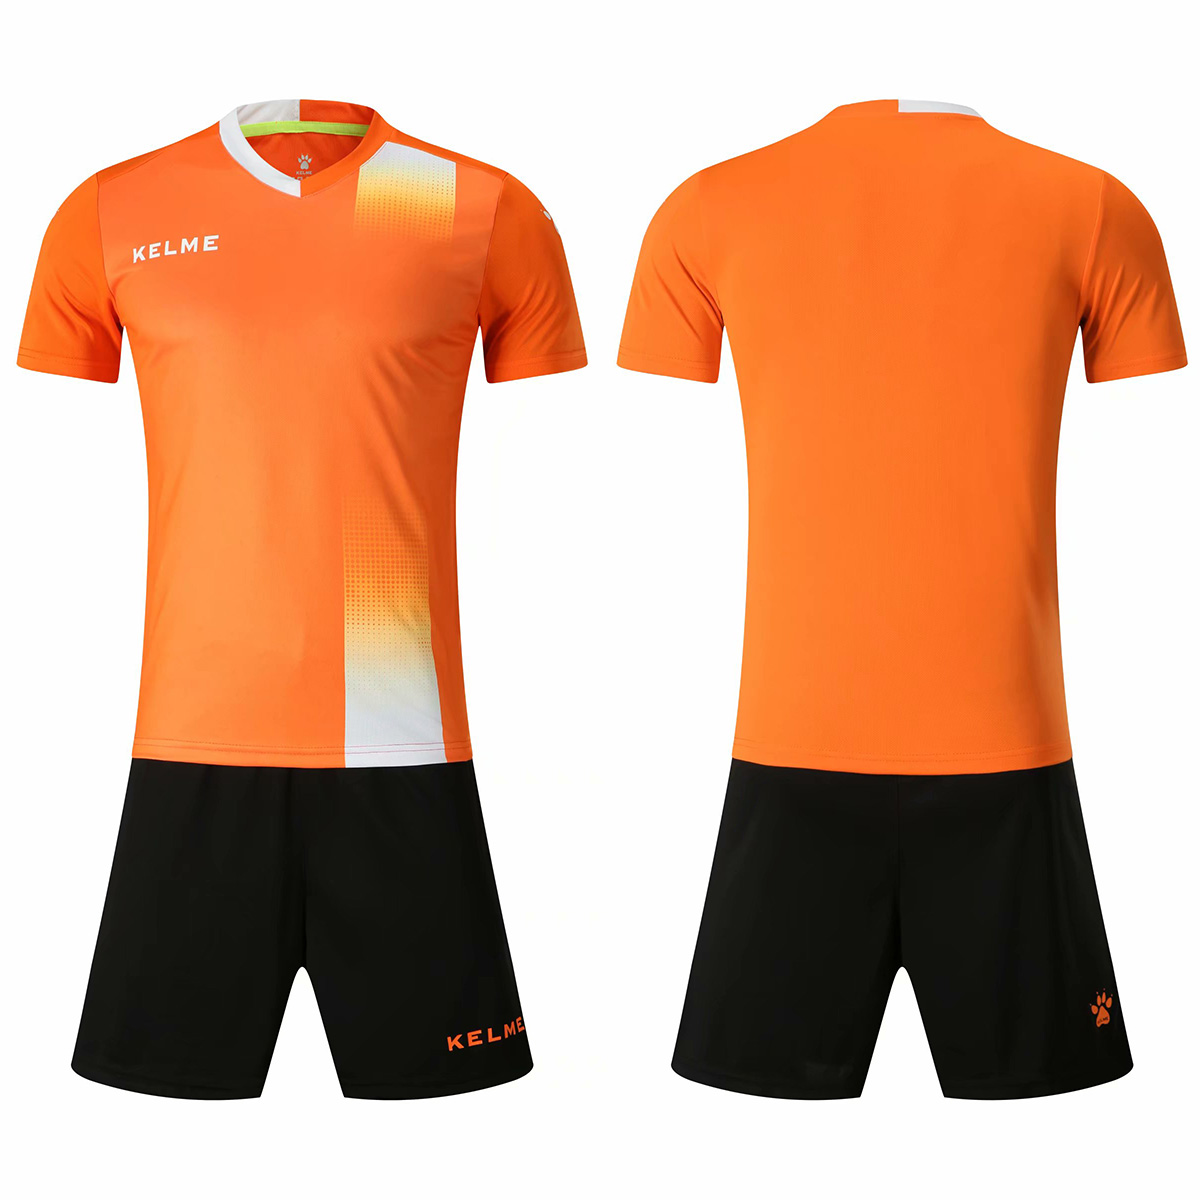 Men's New Personality Football Sportswear Suit Sportswear Football Training Suit Running Training Suit Blank Can Be Customized